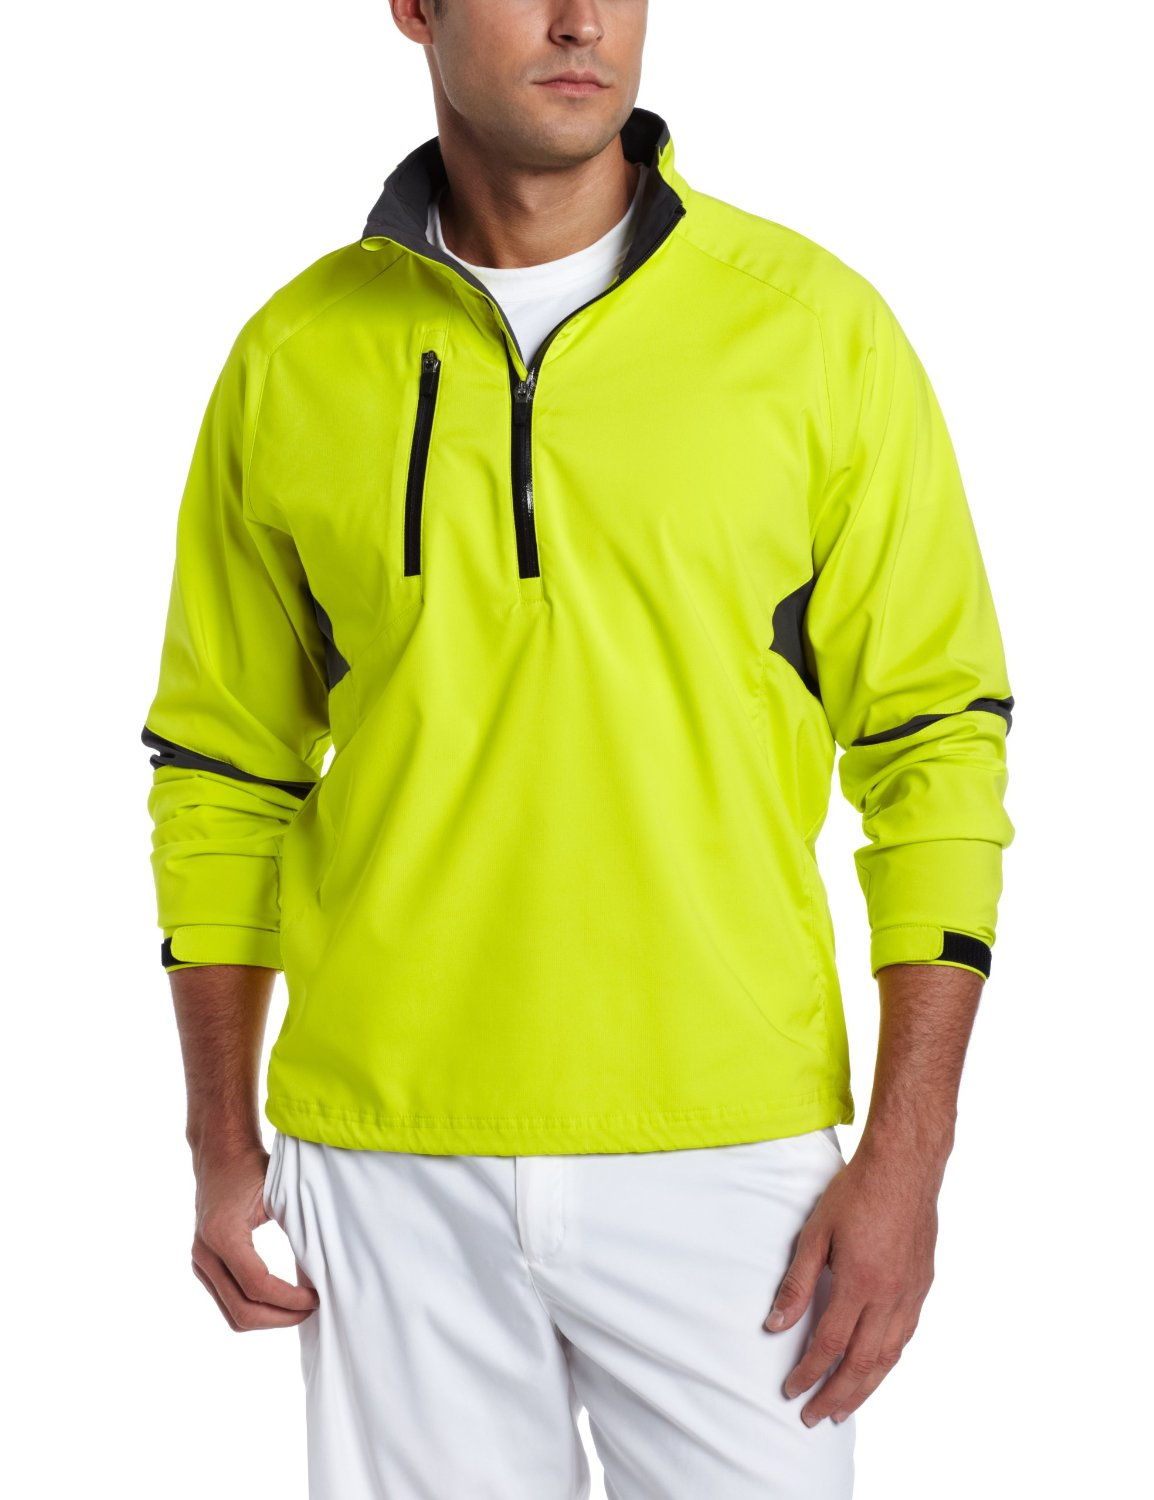 Zero Restriction Mens Golf Windshirts